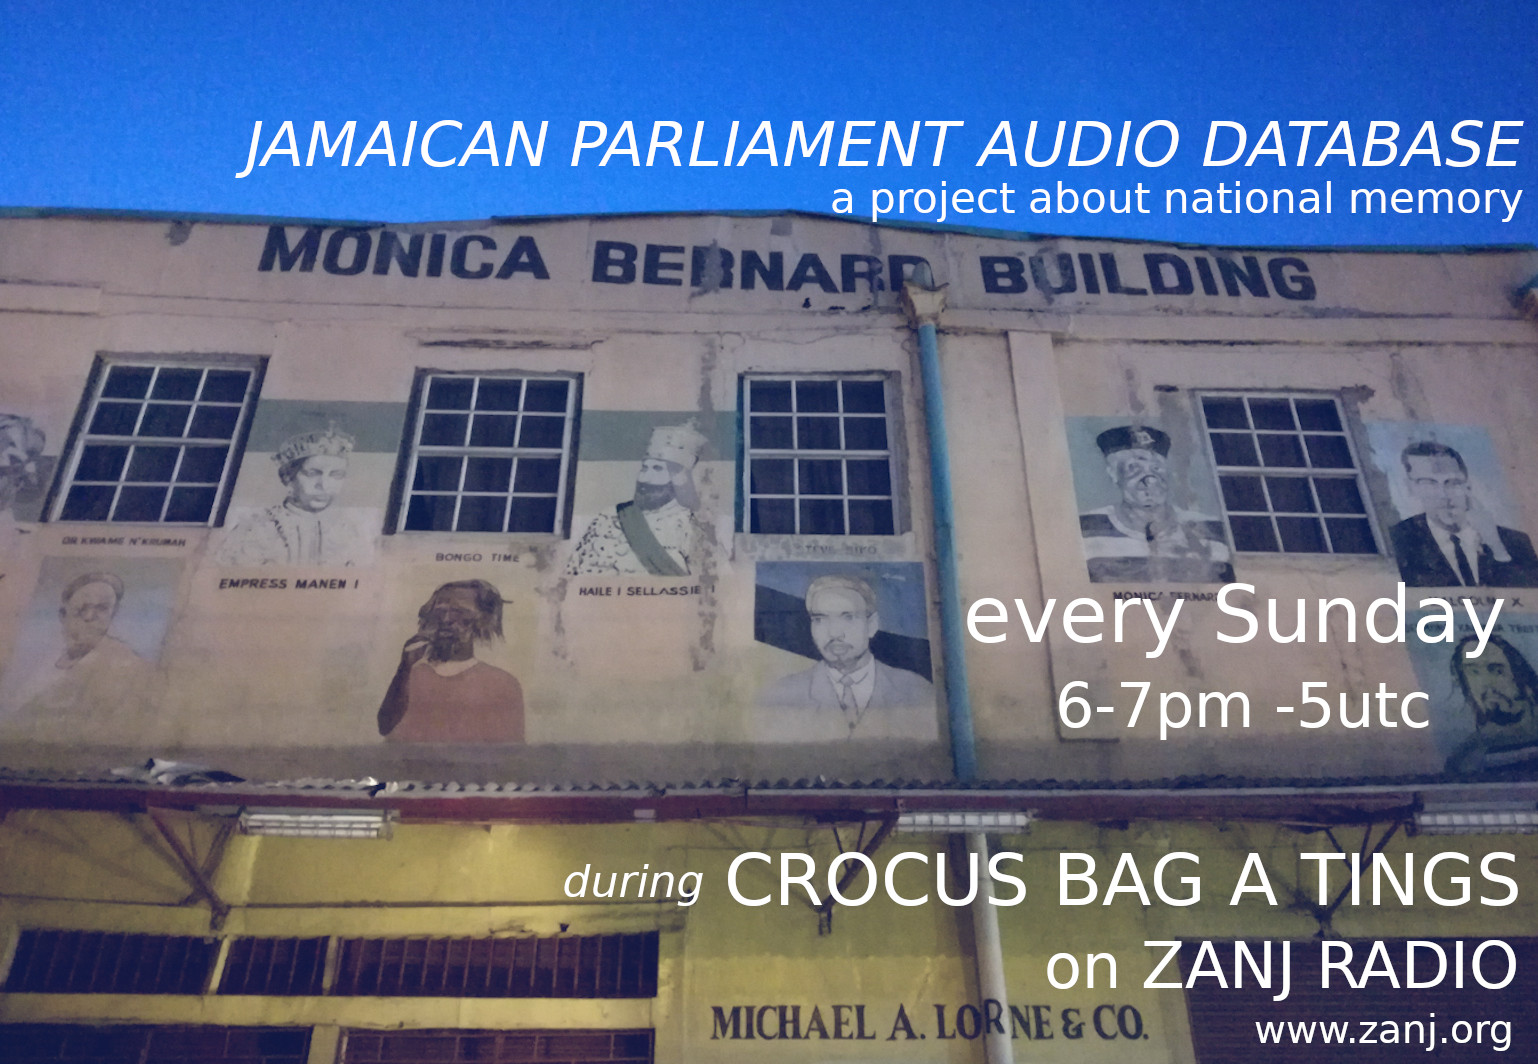 The Jamaica Parliament Audio Database